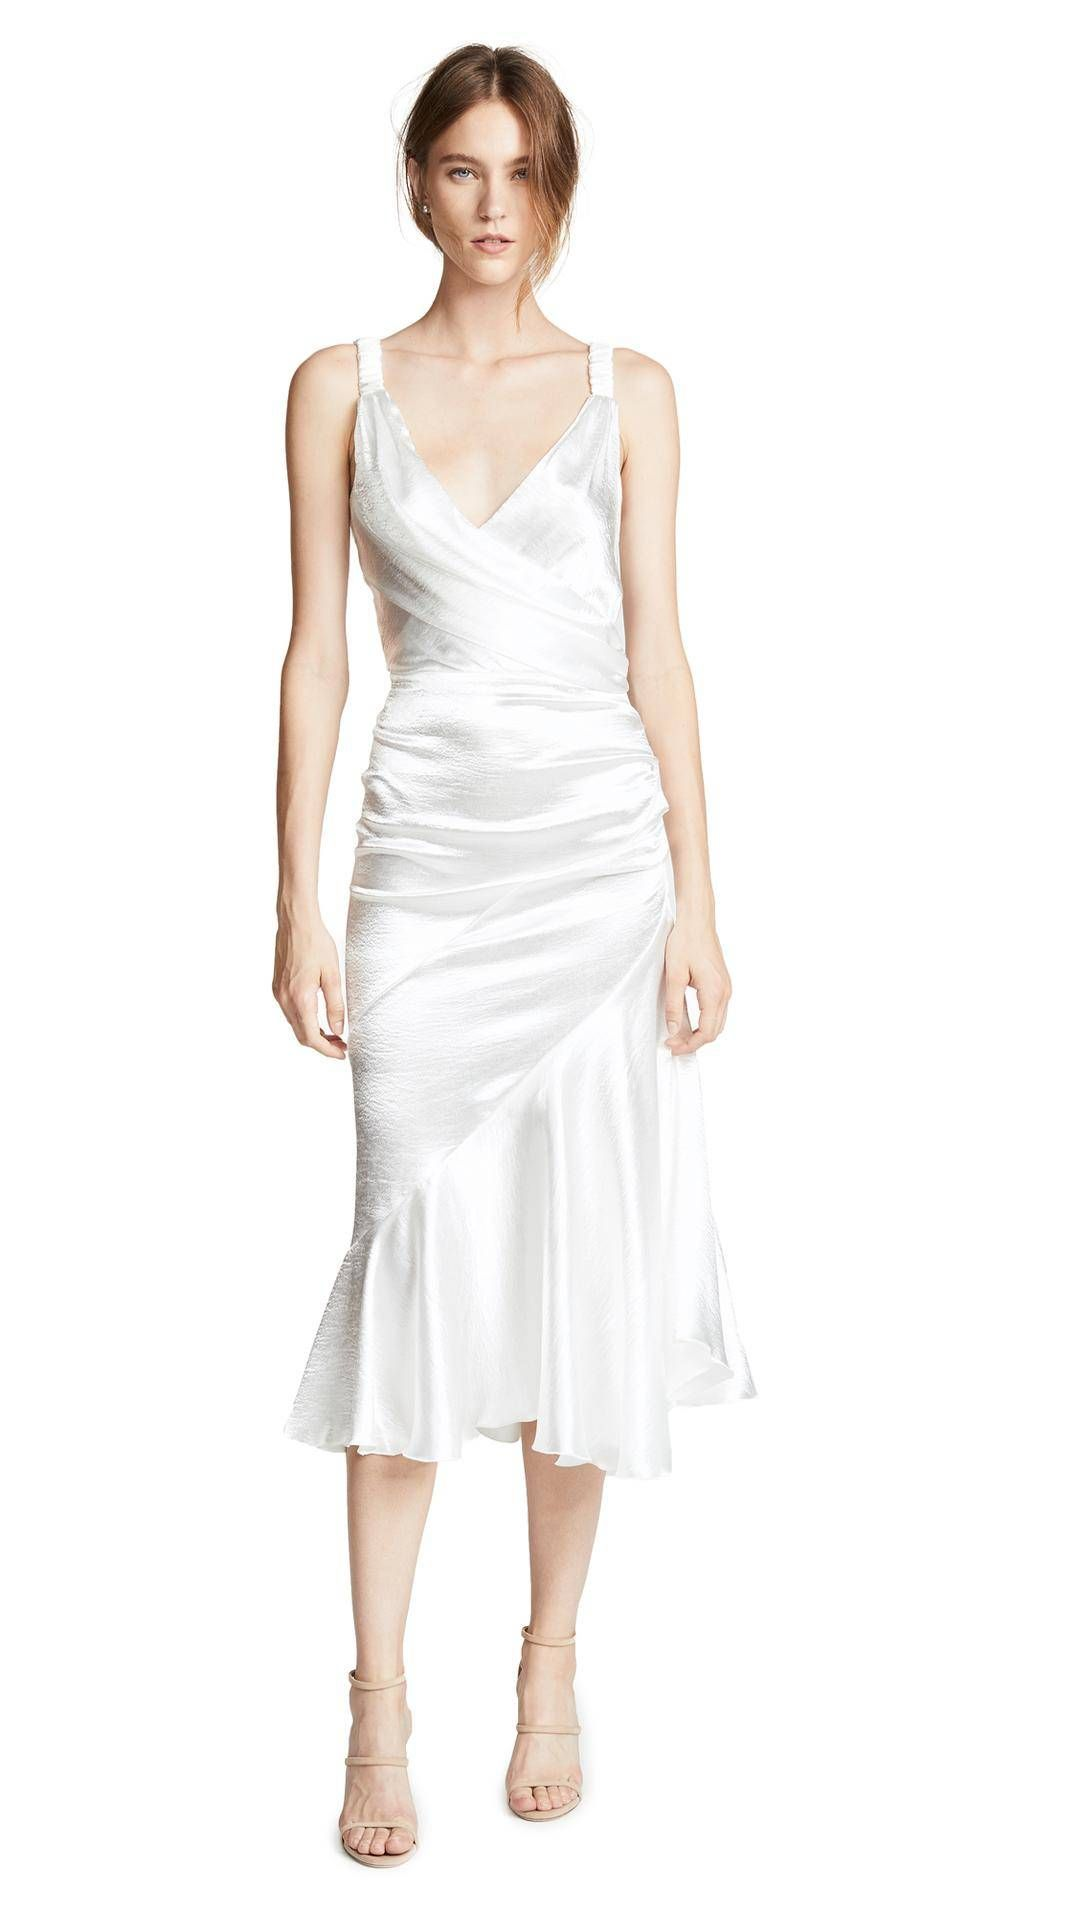 19 Beautiful Wedding Dresses You Can Buy Off The Rack Minimalist Wedding Dresses Bride Party Dress Engagement Party Dresses